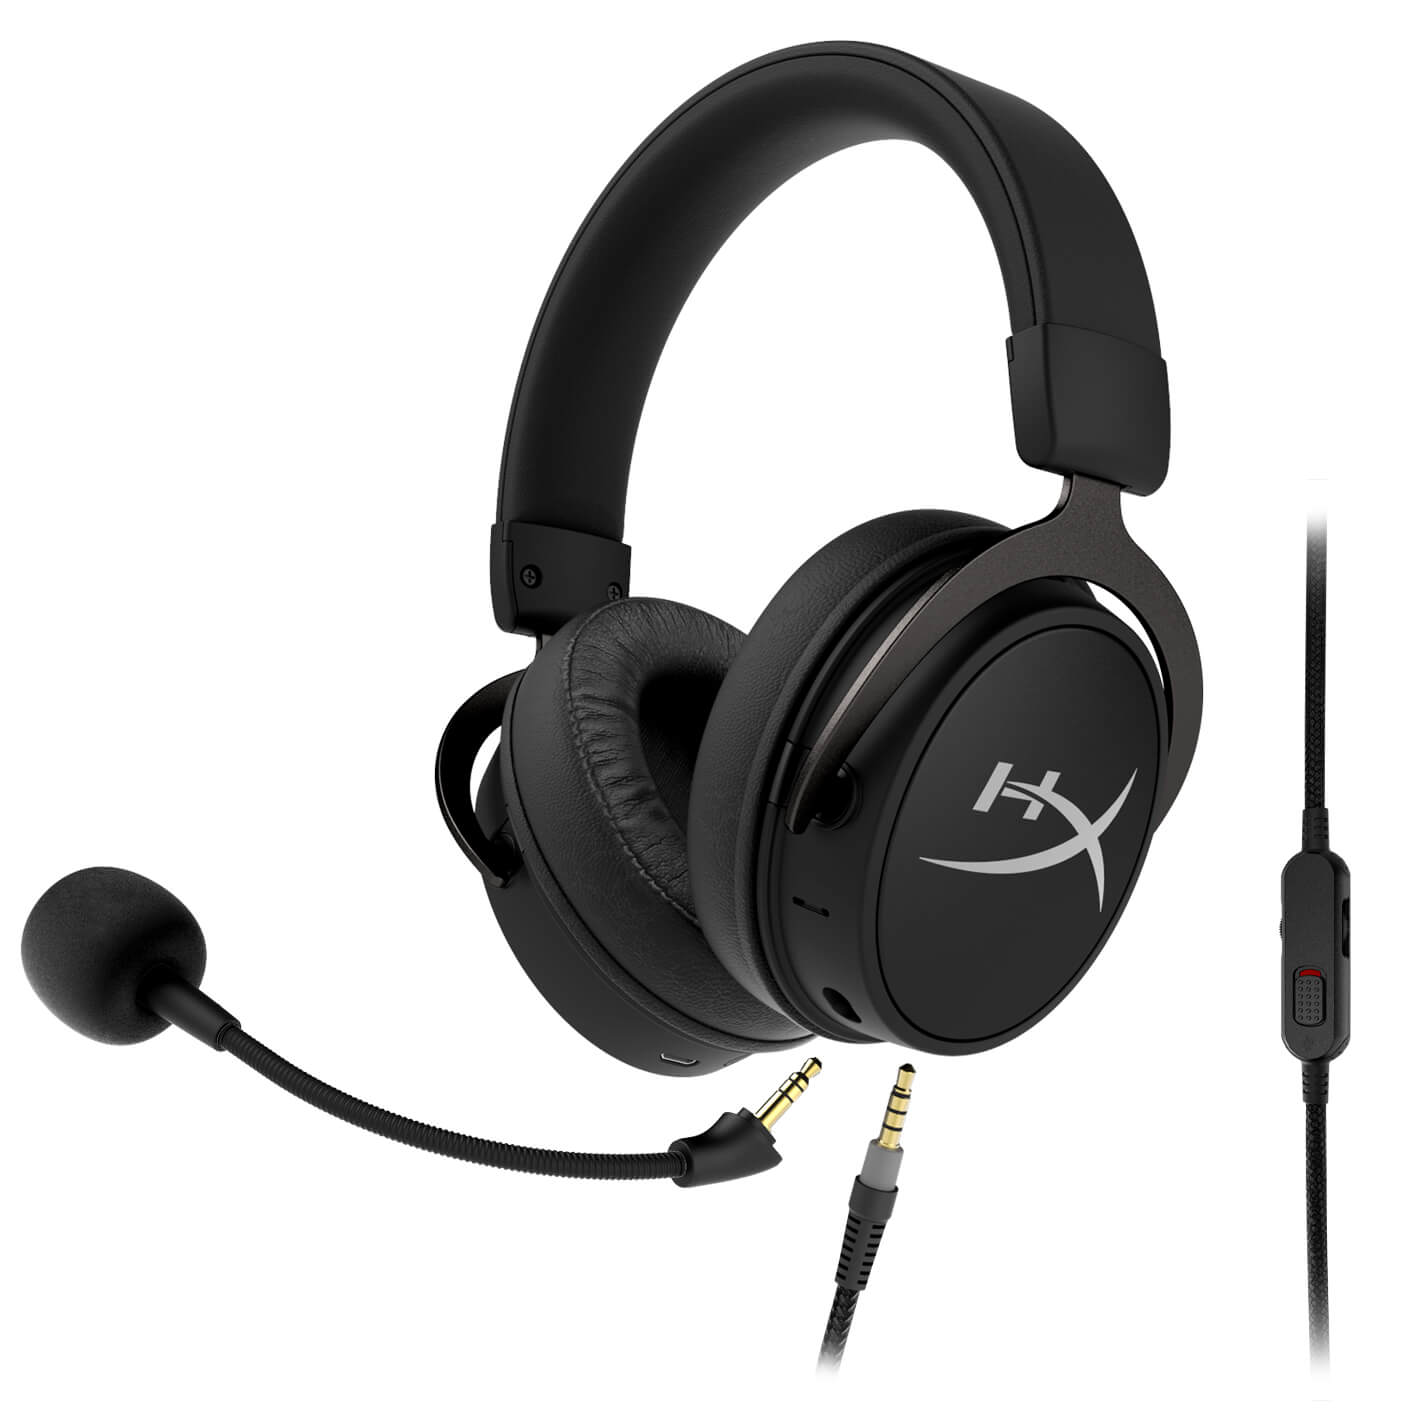 Gym headphones wireless - hyperx cloud wireless headphones